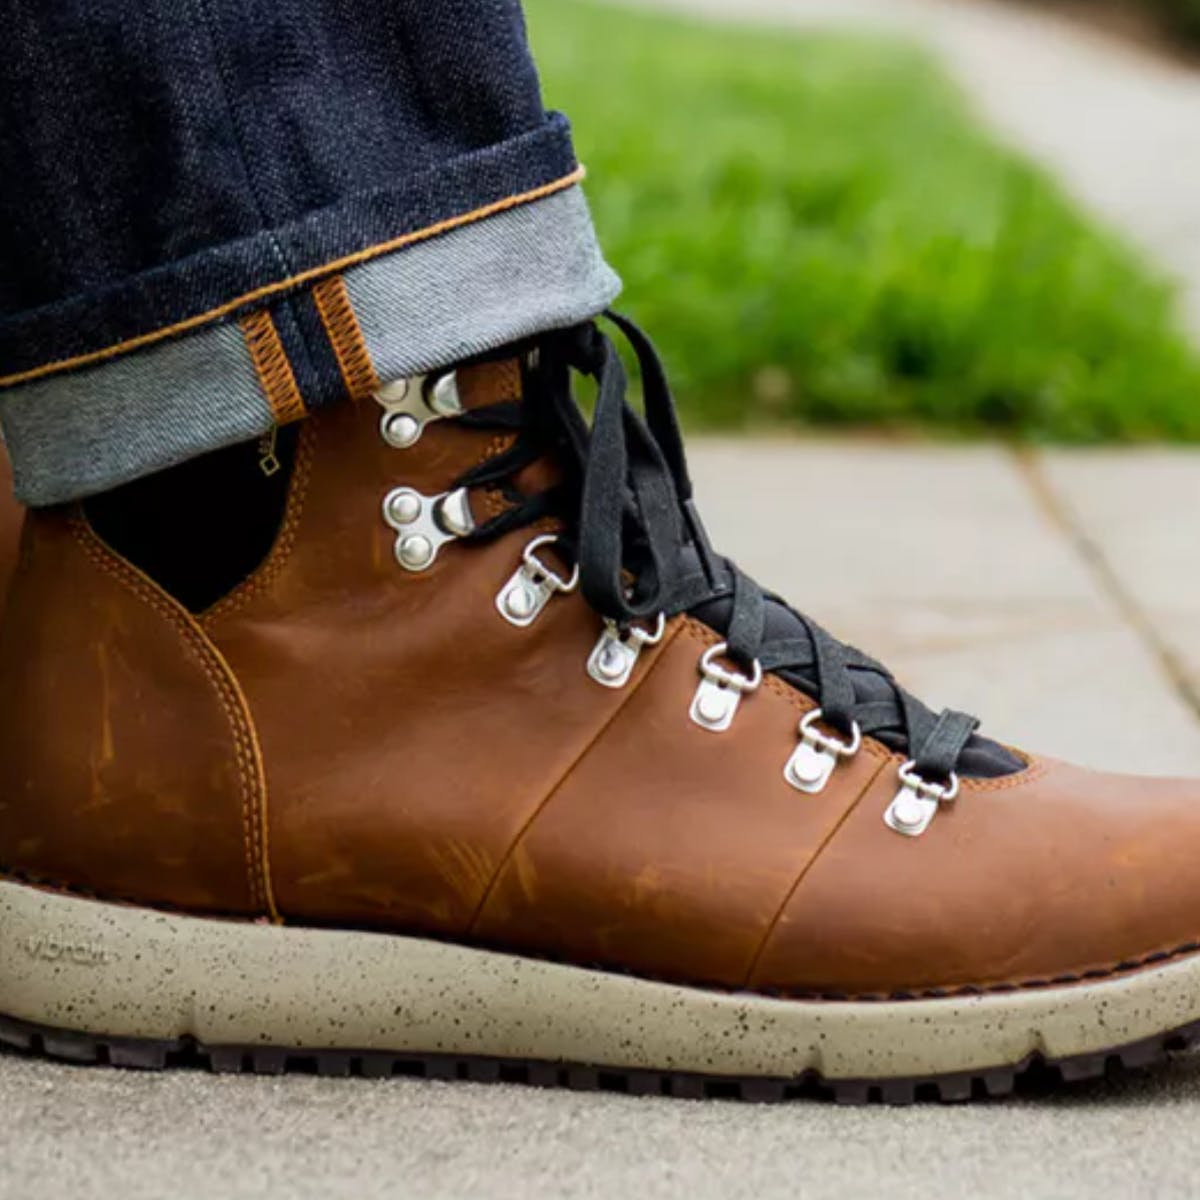 This Weekend Get 30 Percent Off the Ultimate Winter Boots